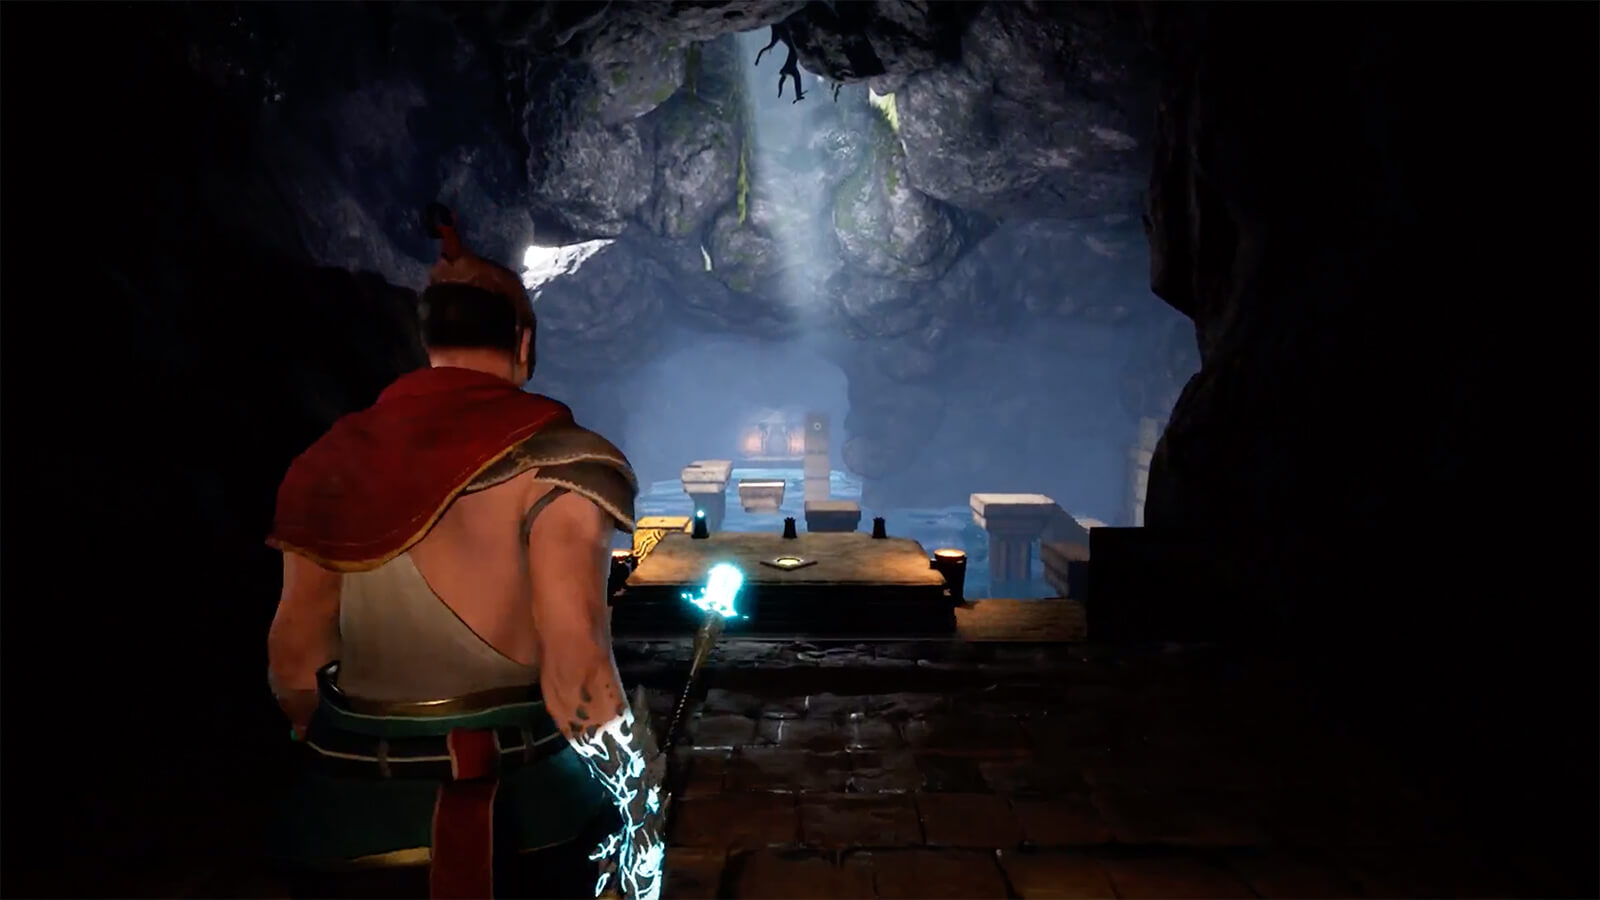 A man faces an opening in a cavern, holding a glowing spear.